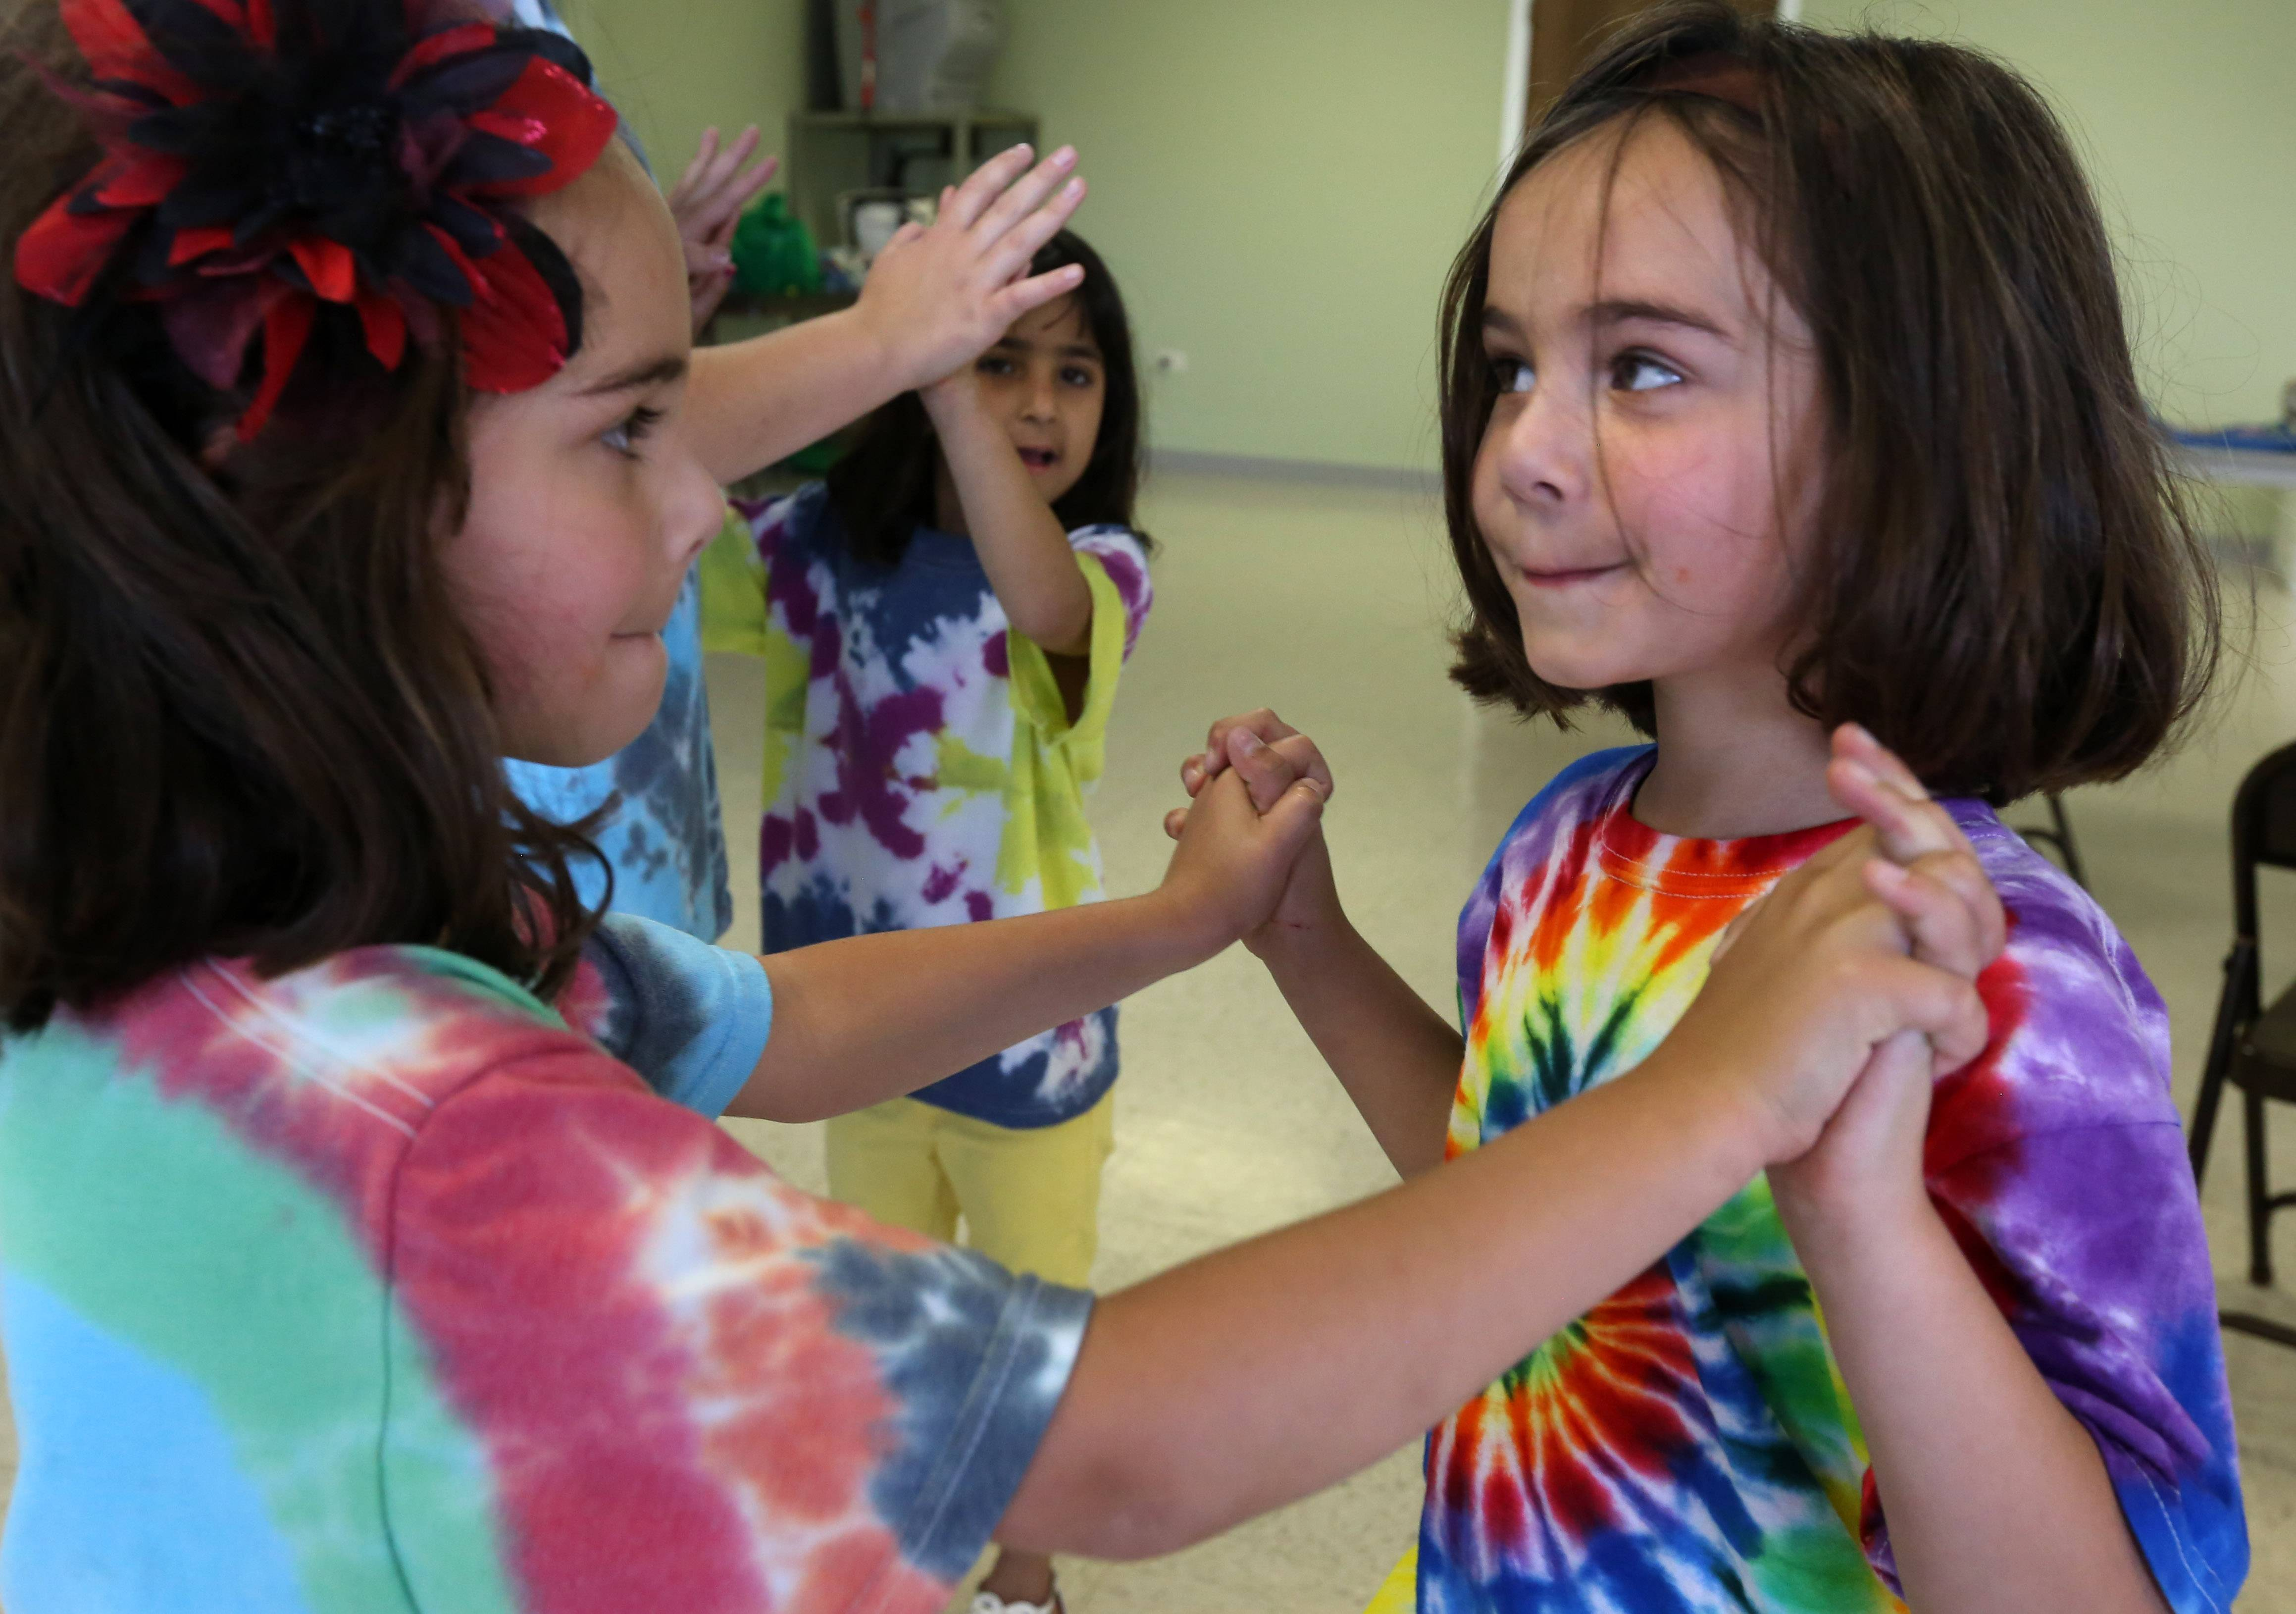 Five-year-old Vernon Hills twins Kaylah DeYoung, right, and Alexys belong to Girl Scout Troop 40735. They attended a recent meeting at Fremont Township government's building where they joined other girls in games and other activities.